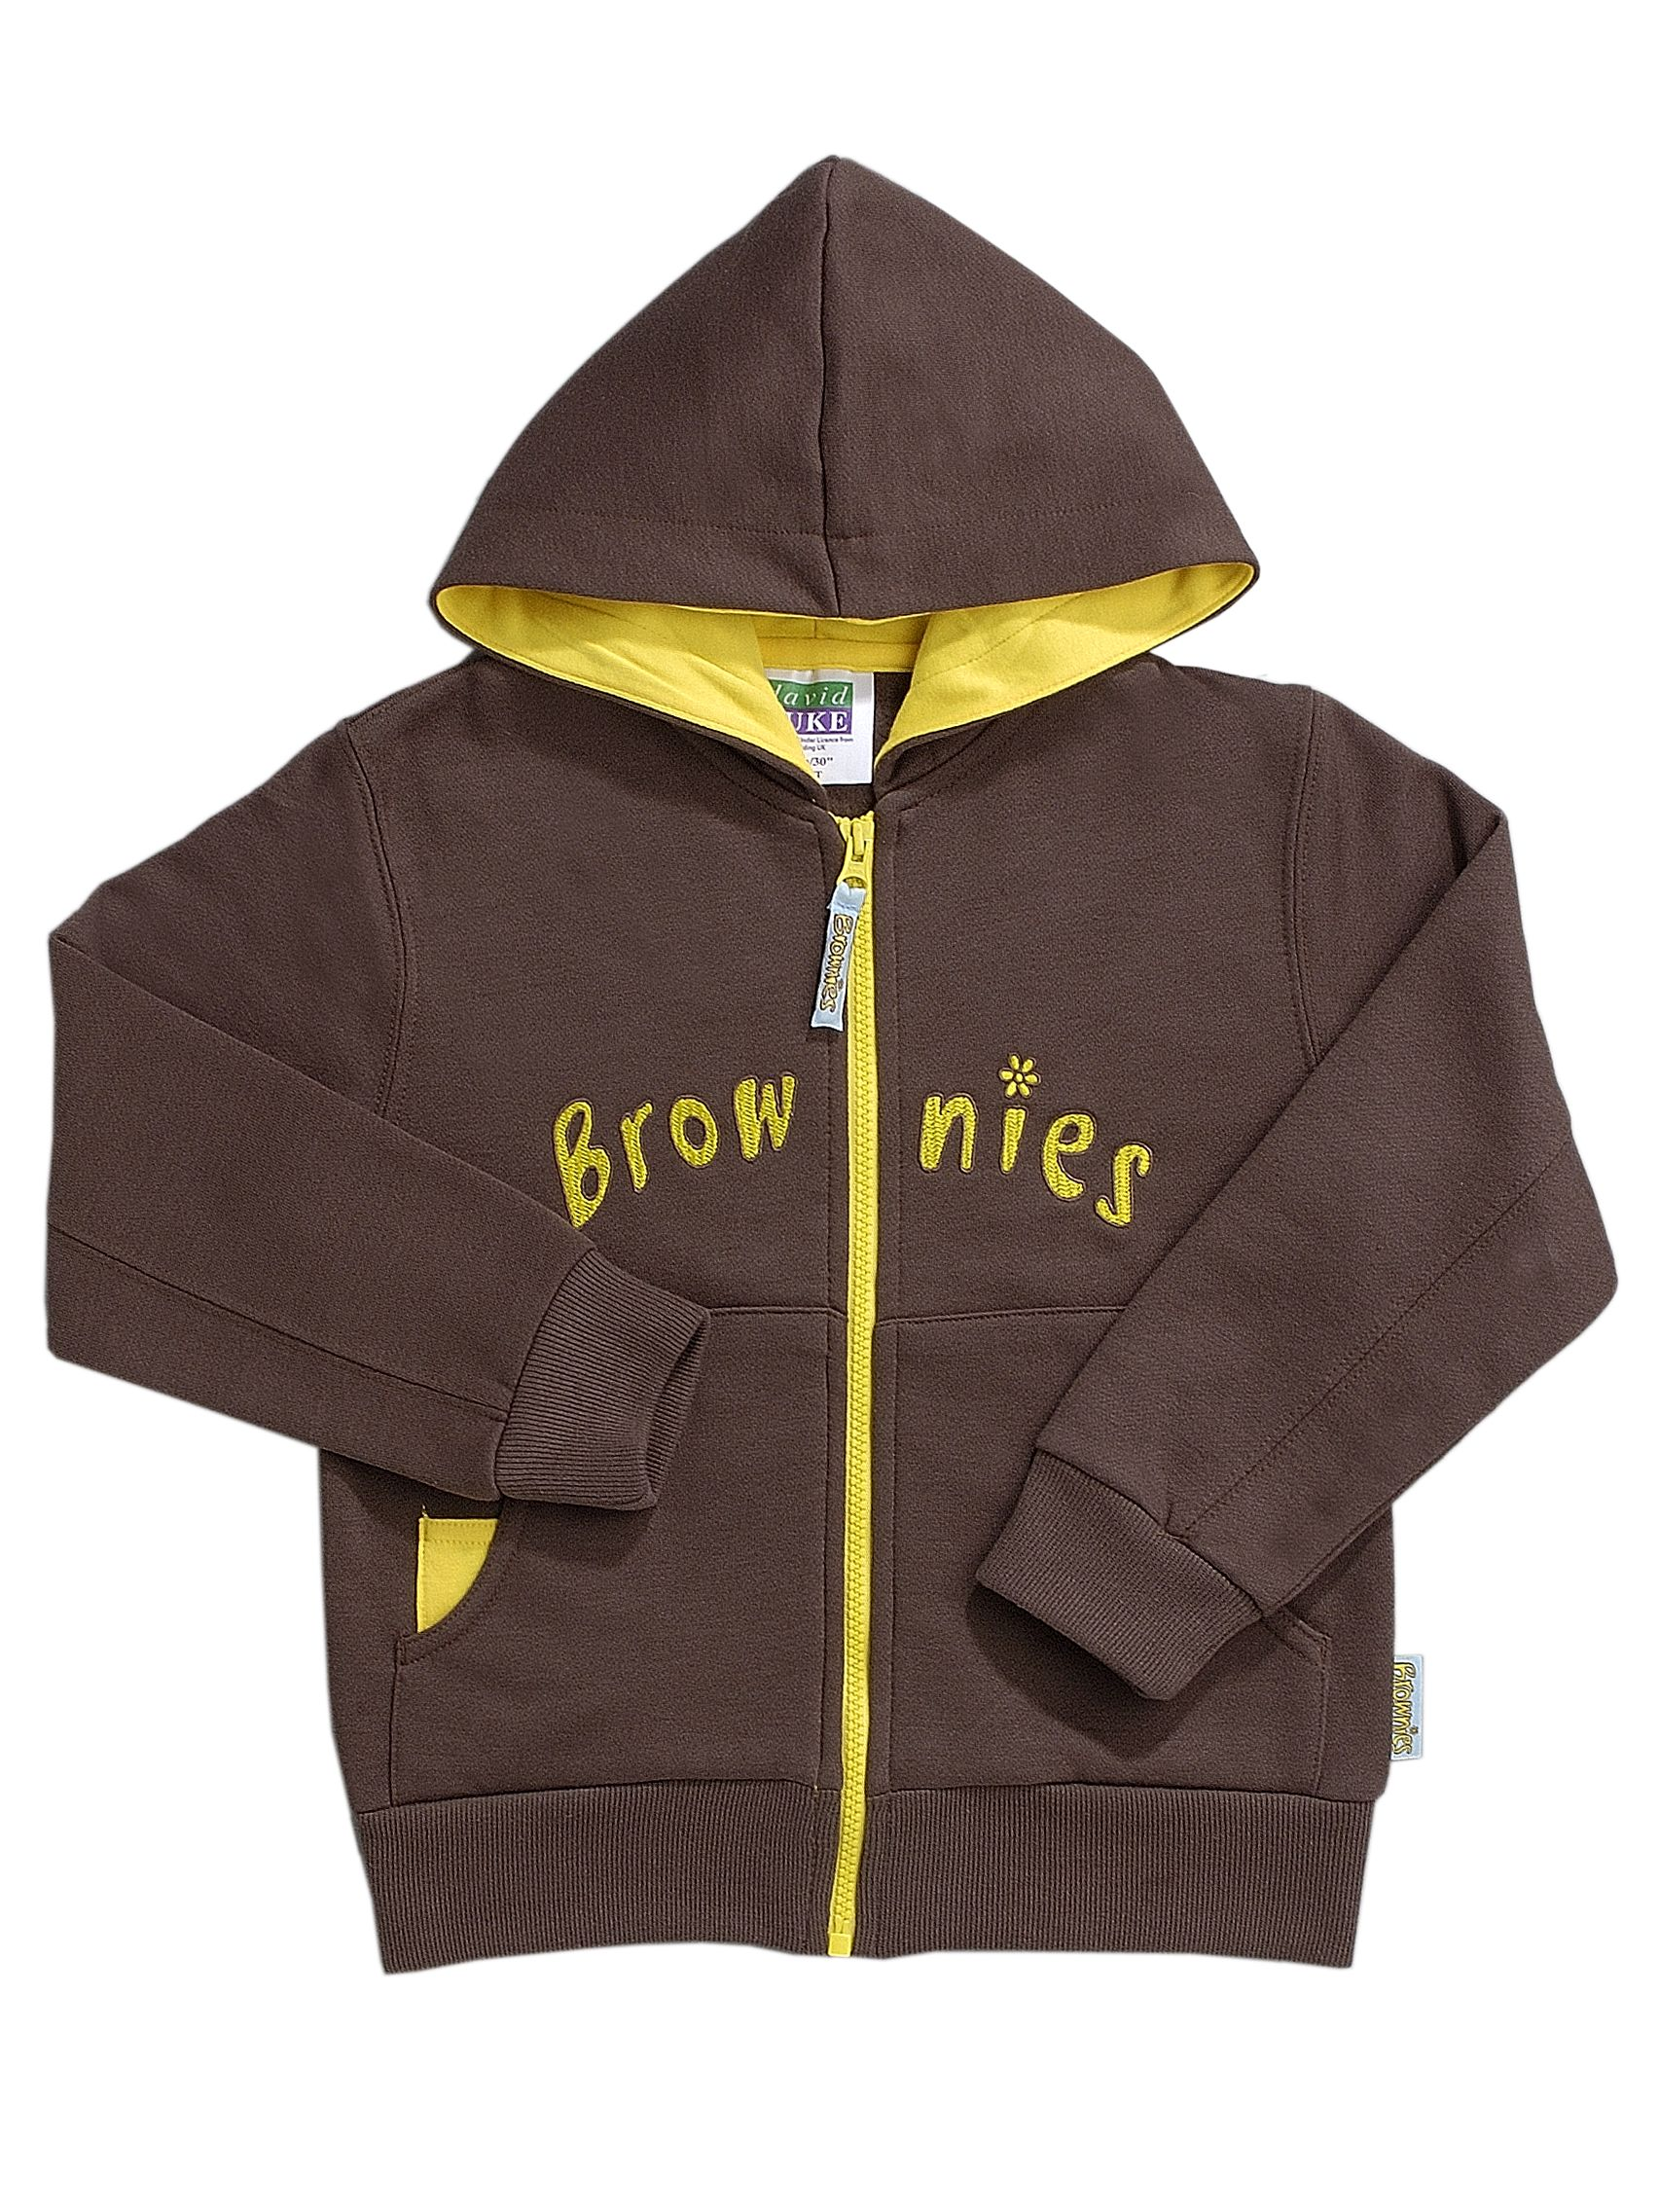 Brownies Brownies Uniform Hooded Zipped Top, Brown